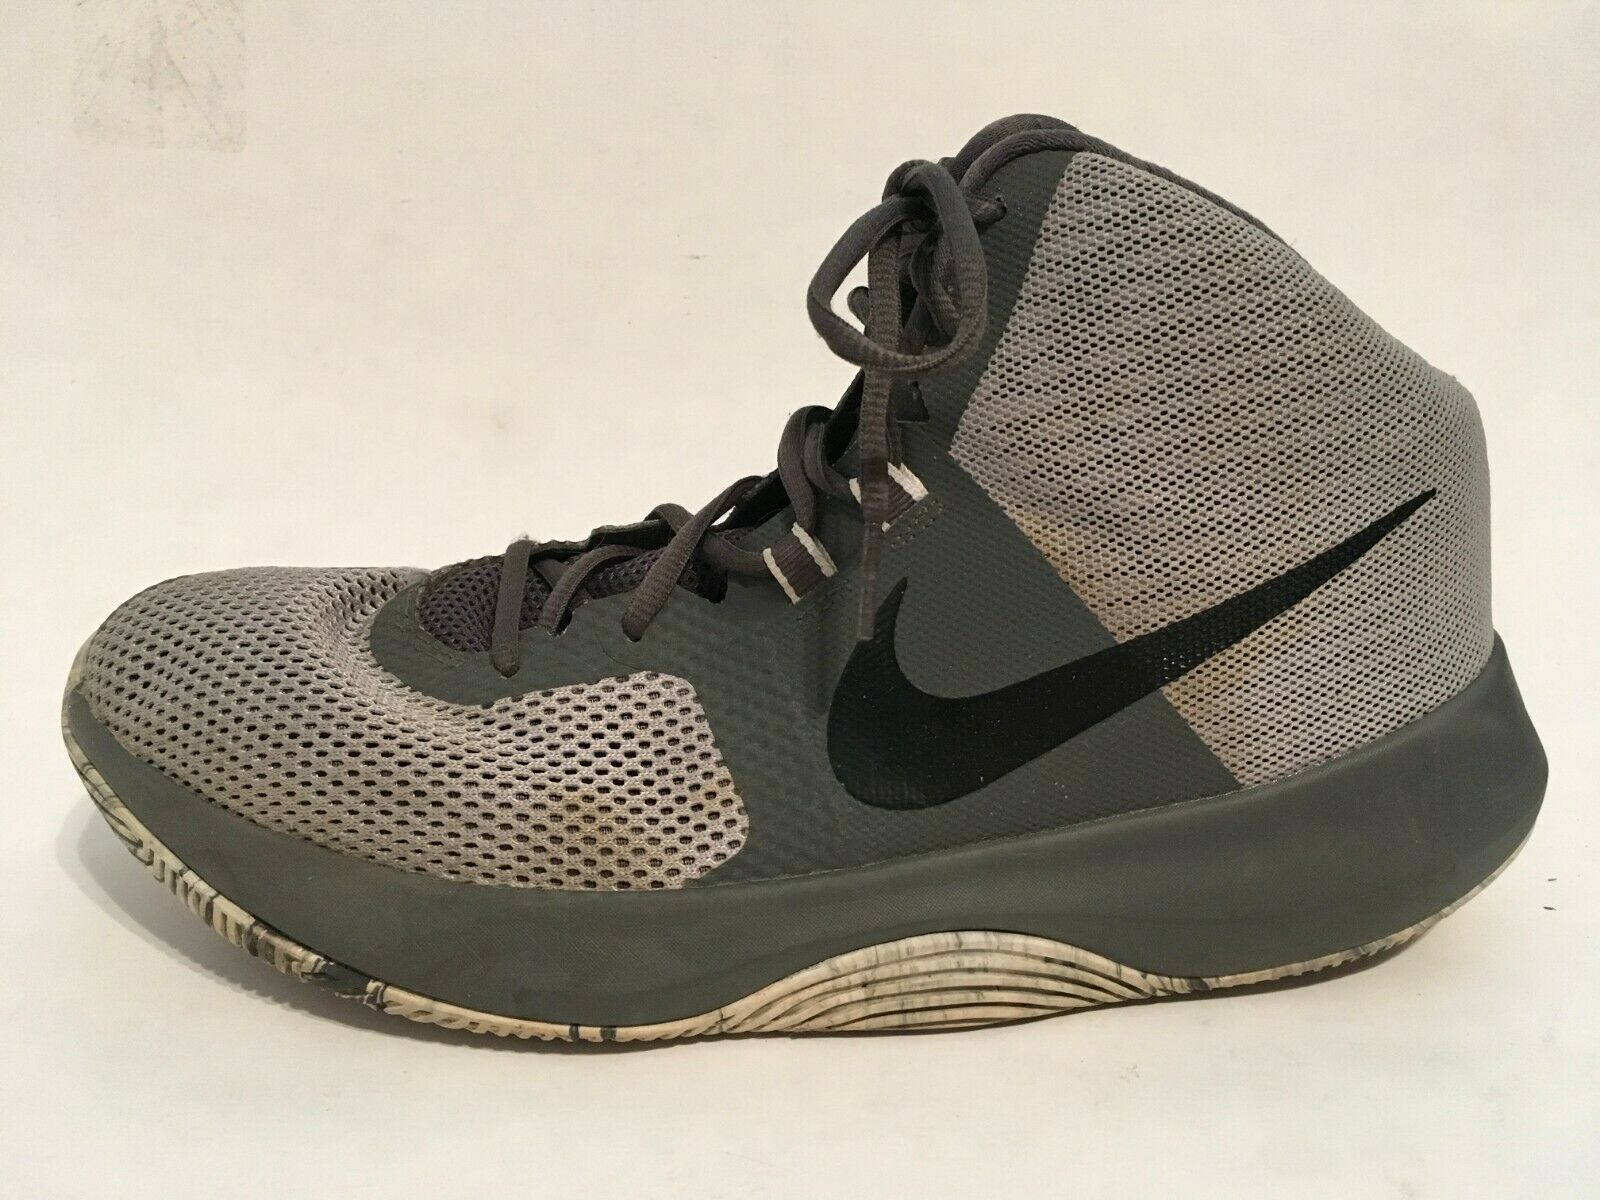 Nike Air Precision Ankle-High Basketball Athletic Shoes Mens sz 10